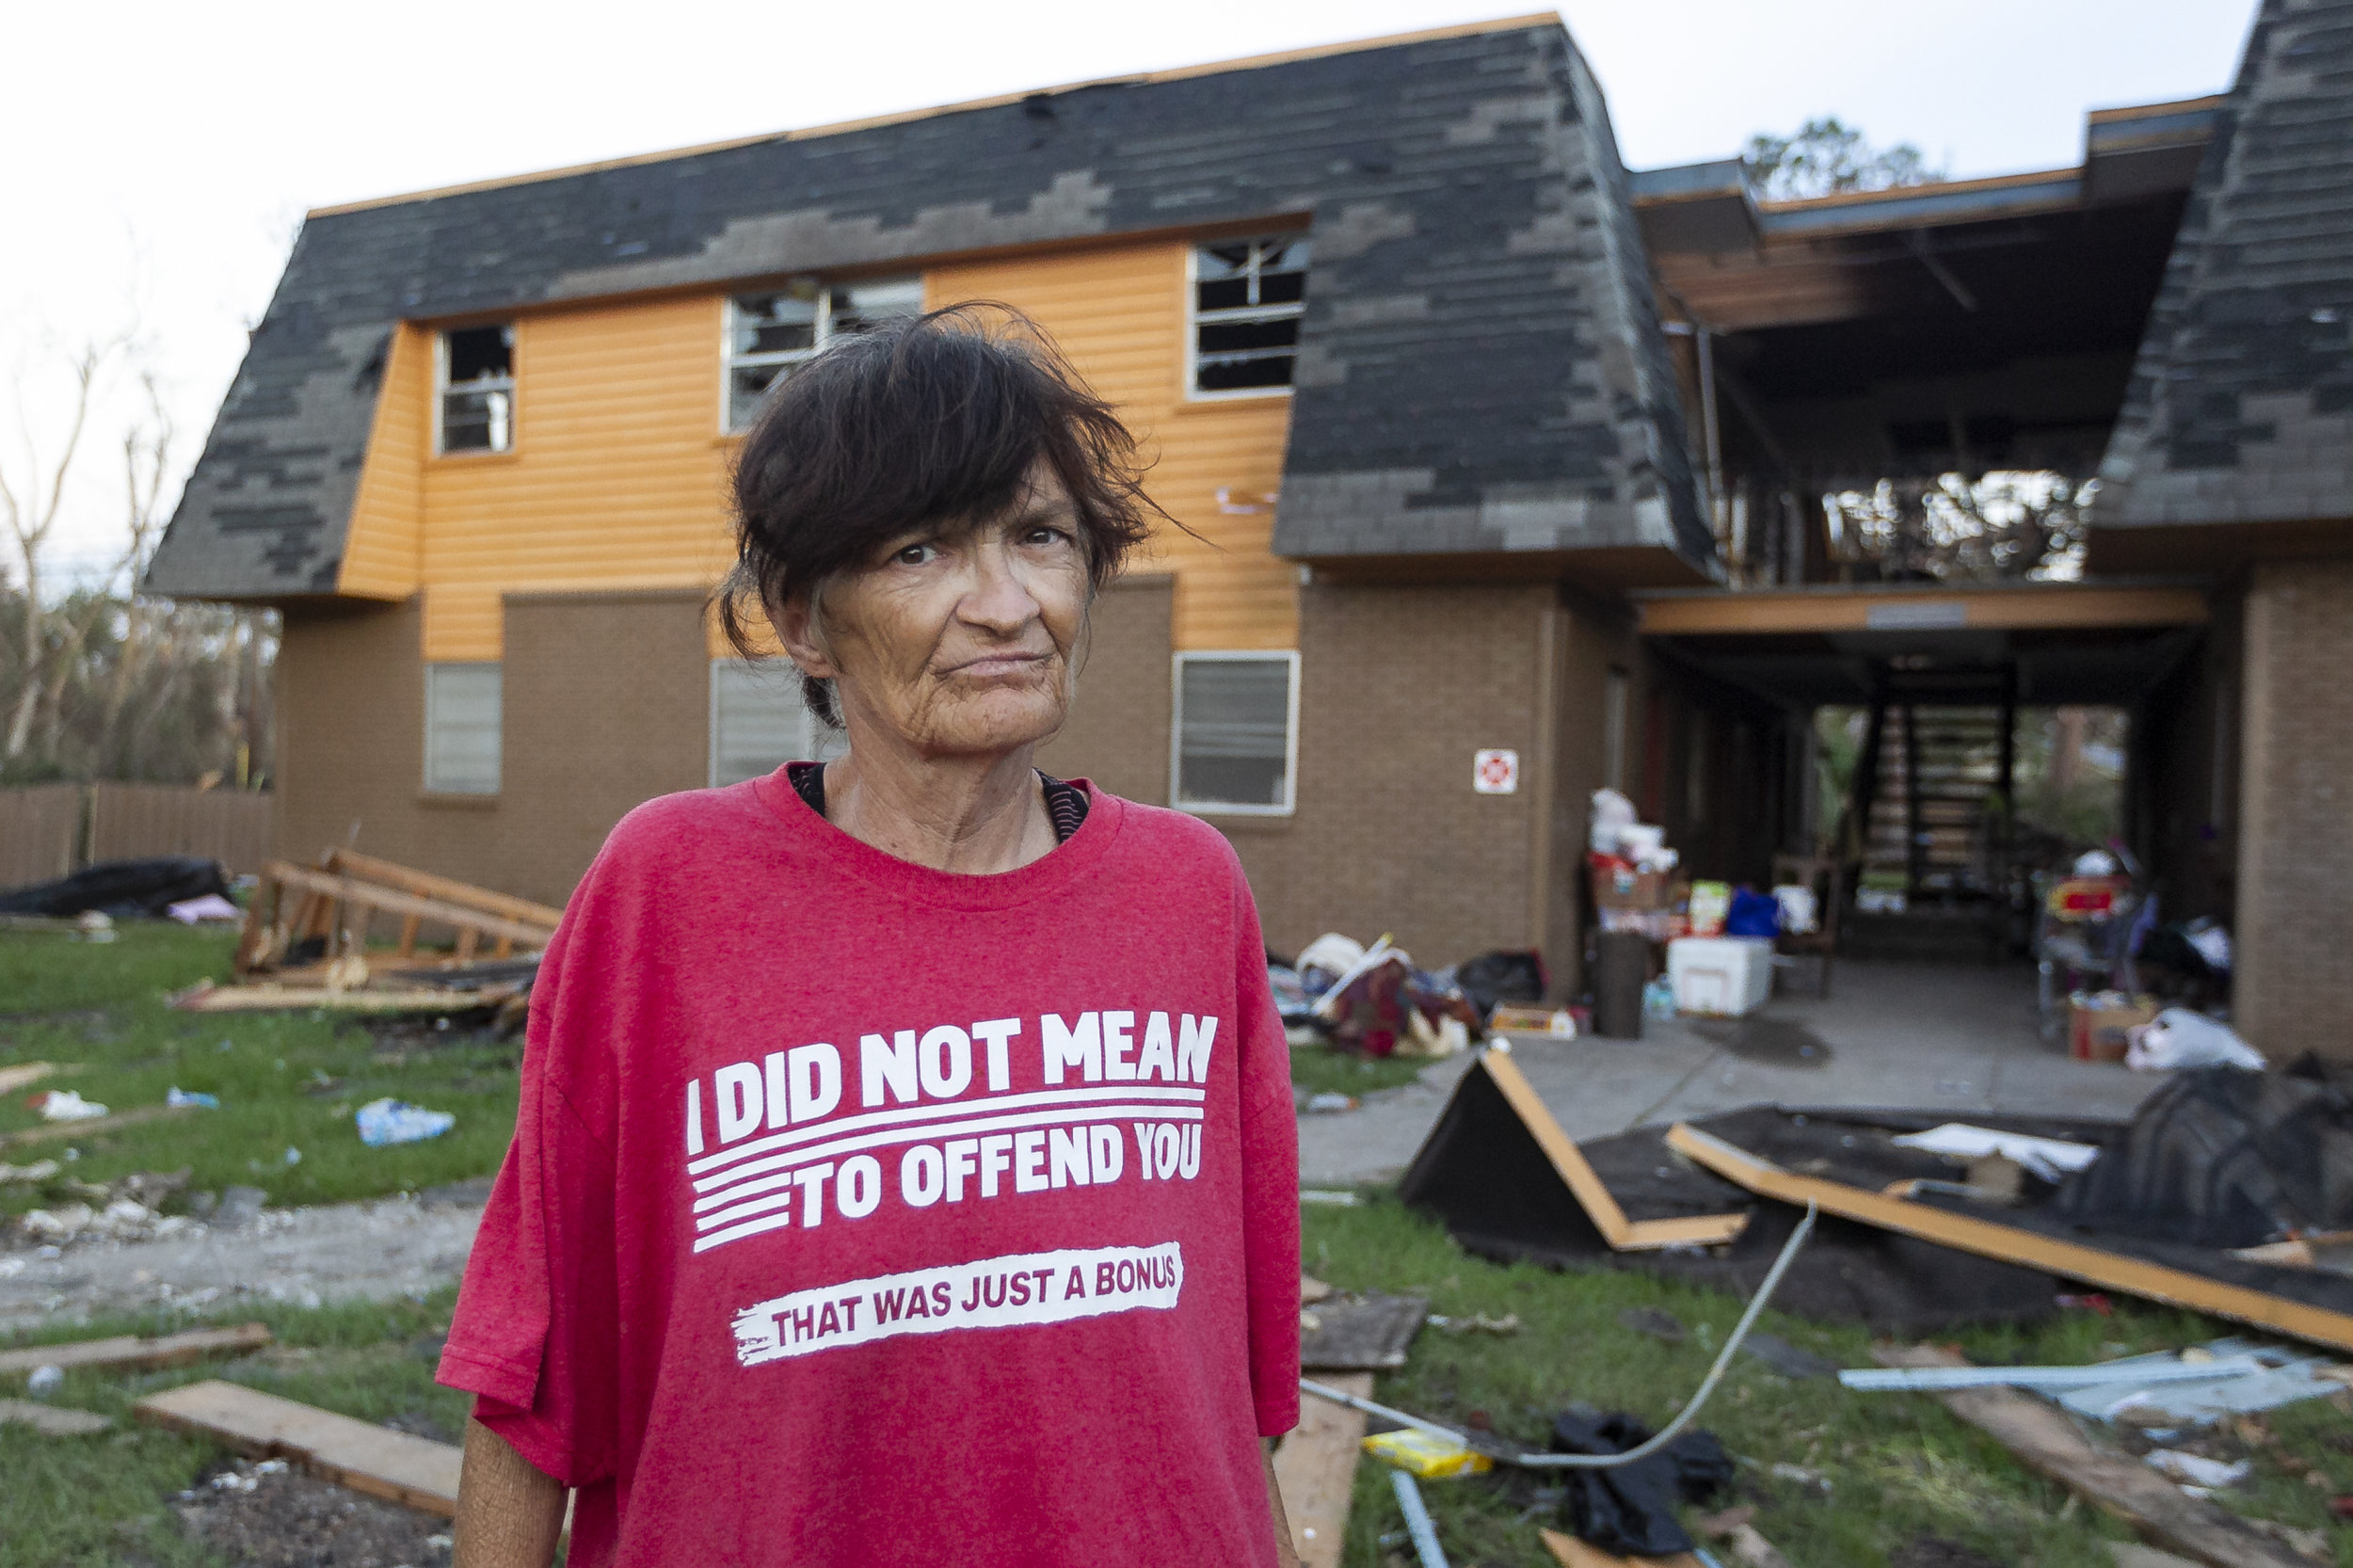 Lorraine DePriest, 55, who suffers from many medical issues, stands outside of her former home in a public housing complex in Panama City, Florida on Friday, October 19, 2018. Hurricane Michael devastated the Florida Panhandle leaving tens of thousands without food, power or shelter.